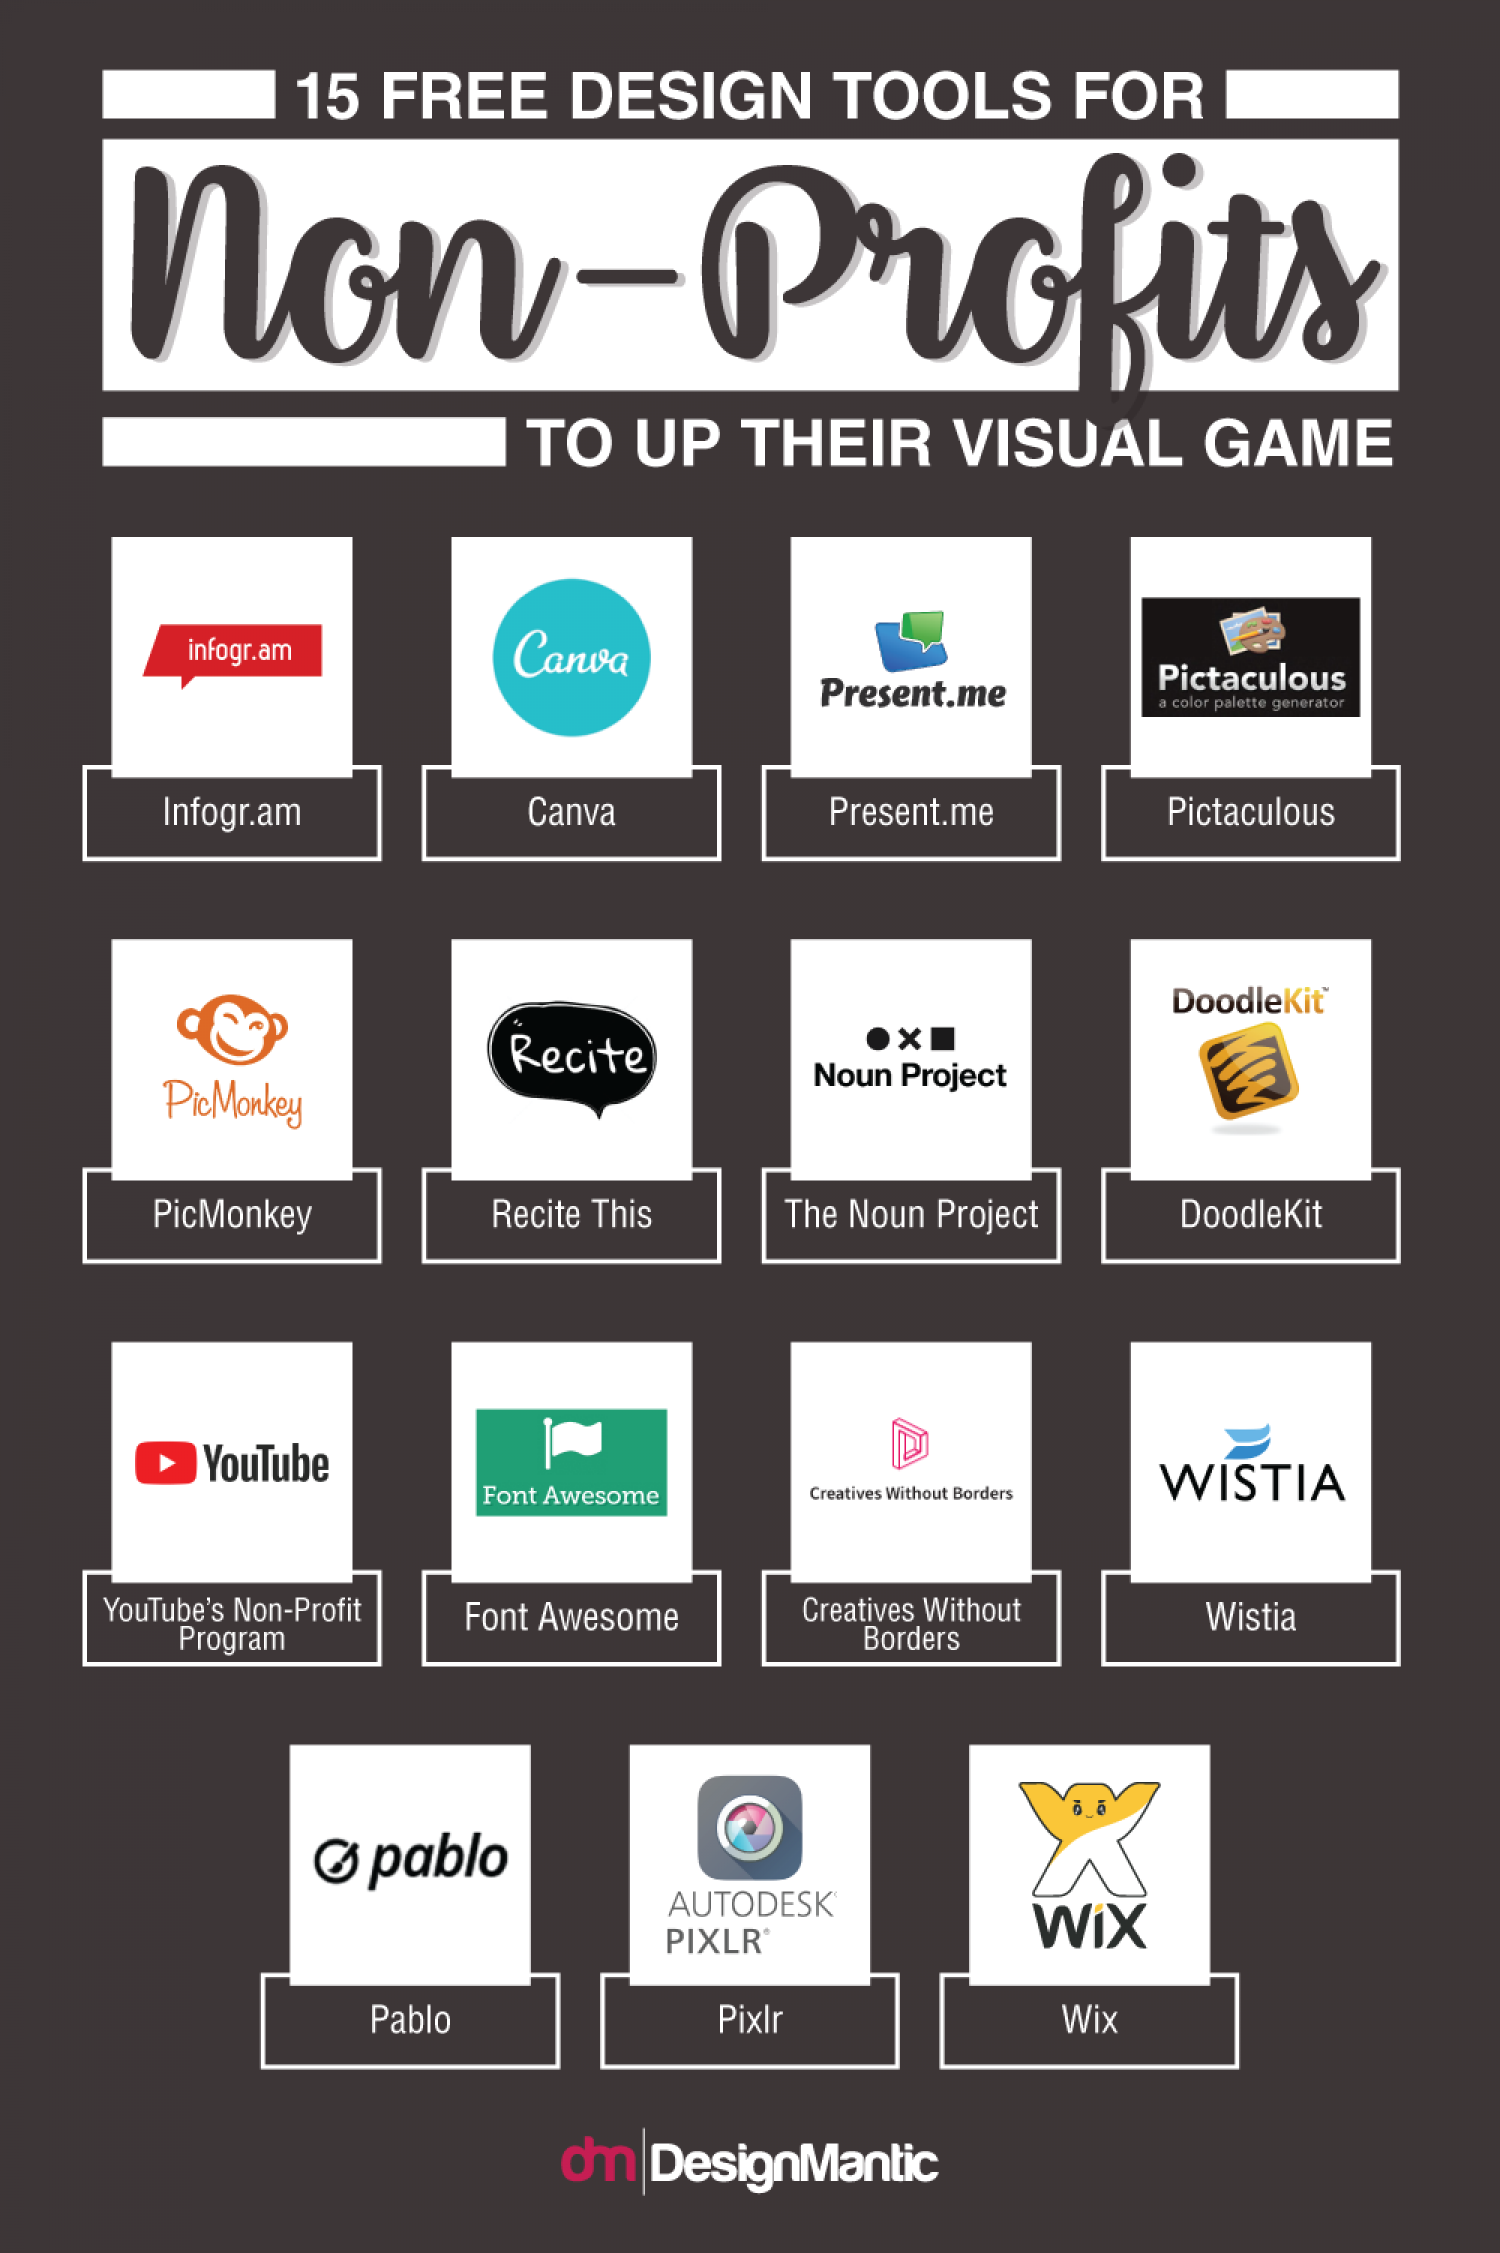 15 Free Design Tools For Non Profits To Up Their Visual Game! Infographic